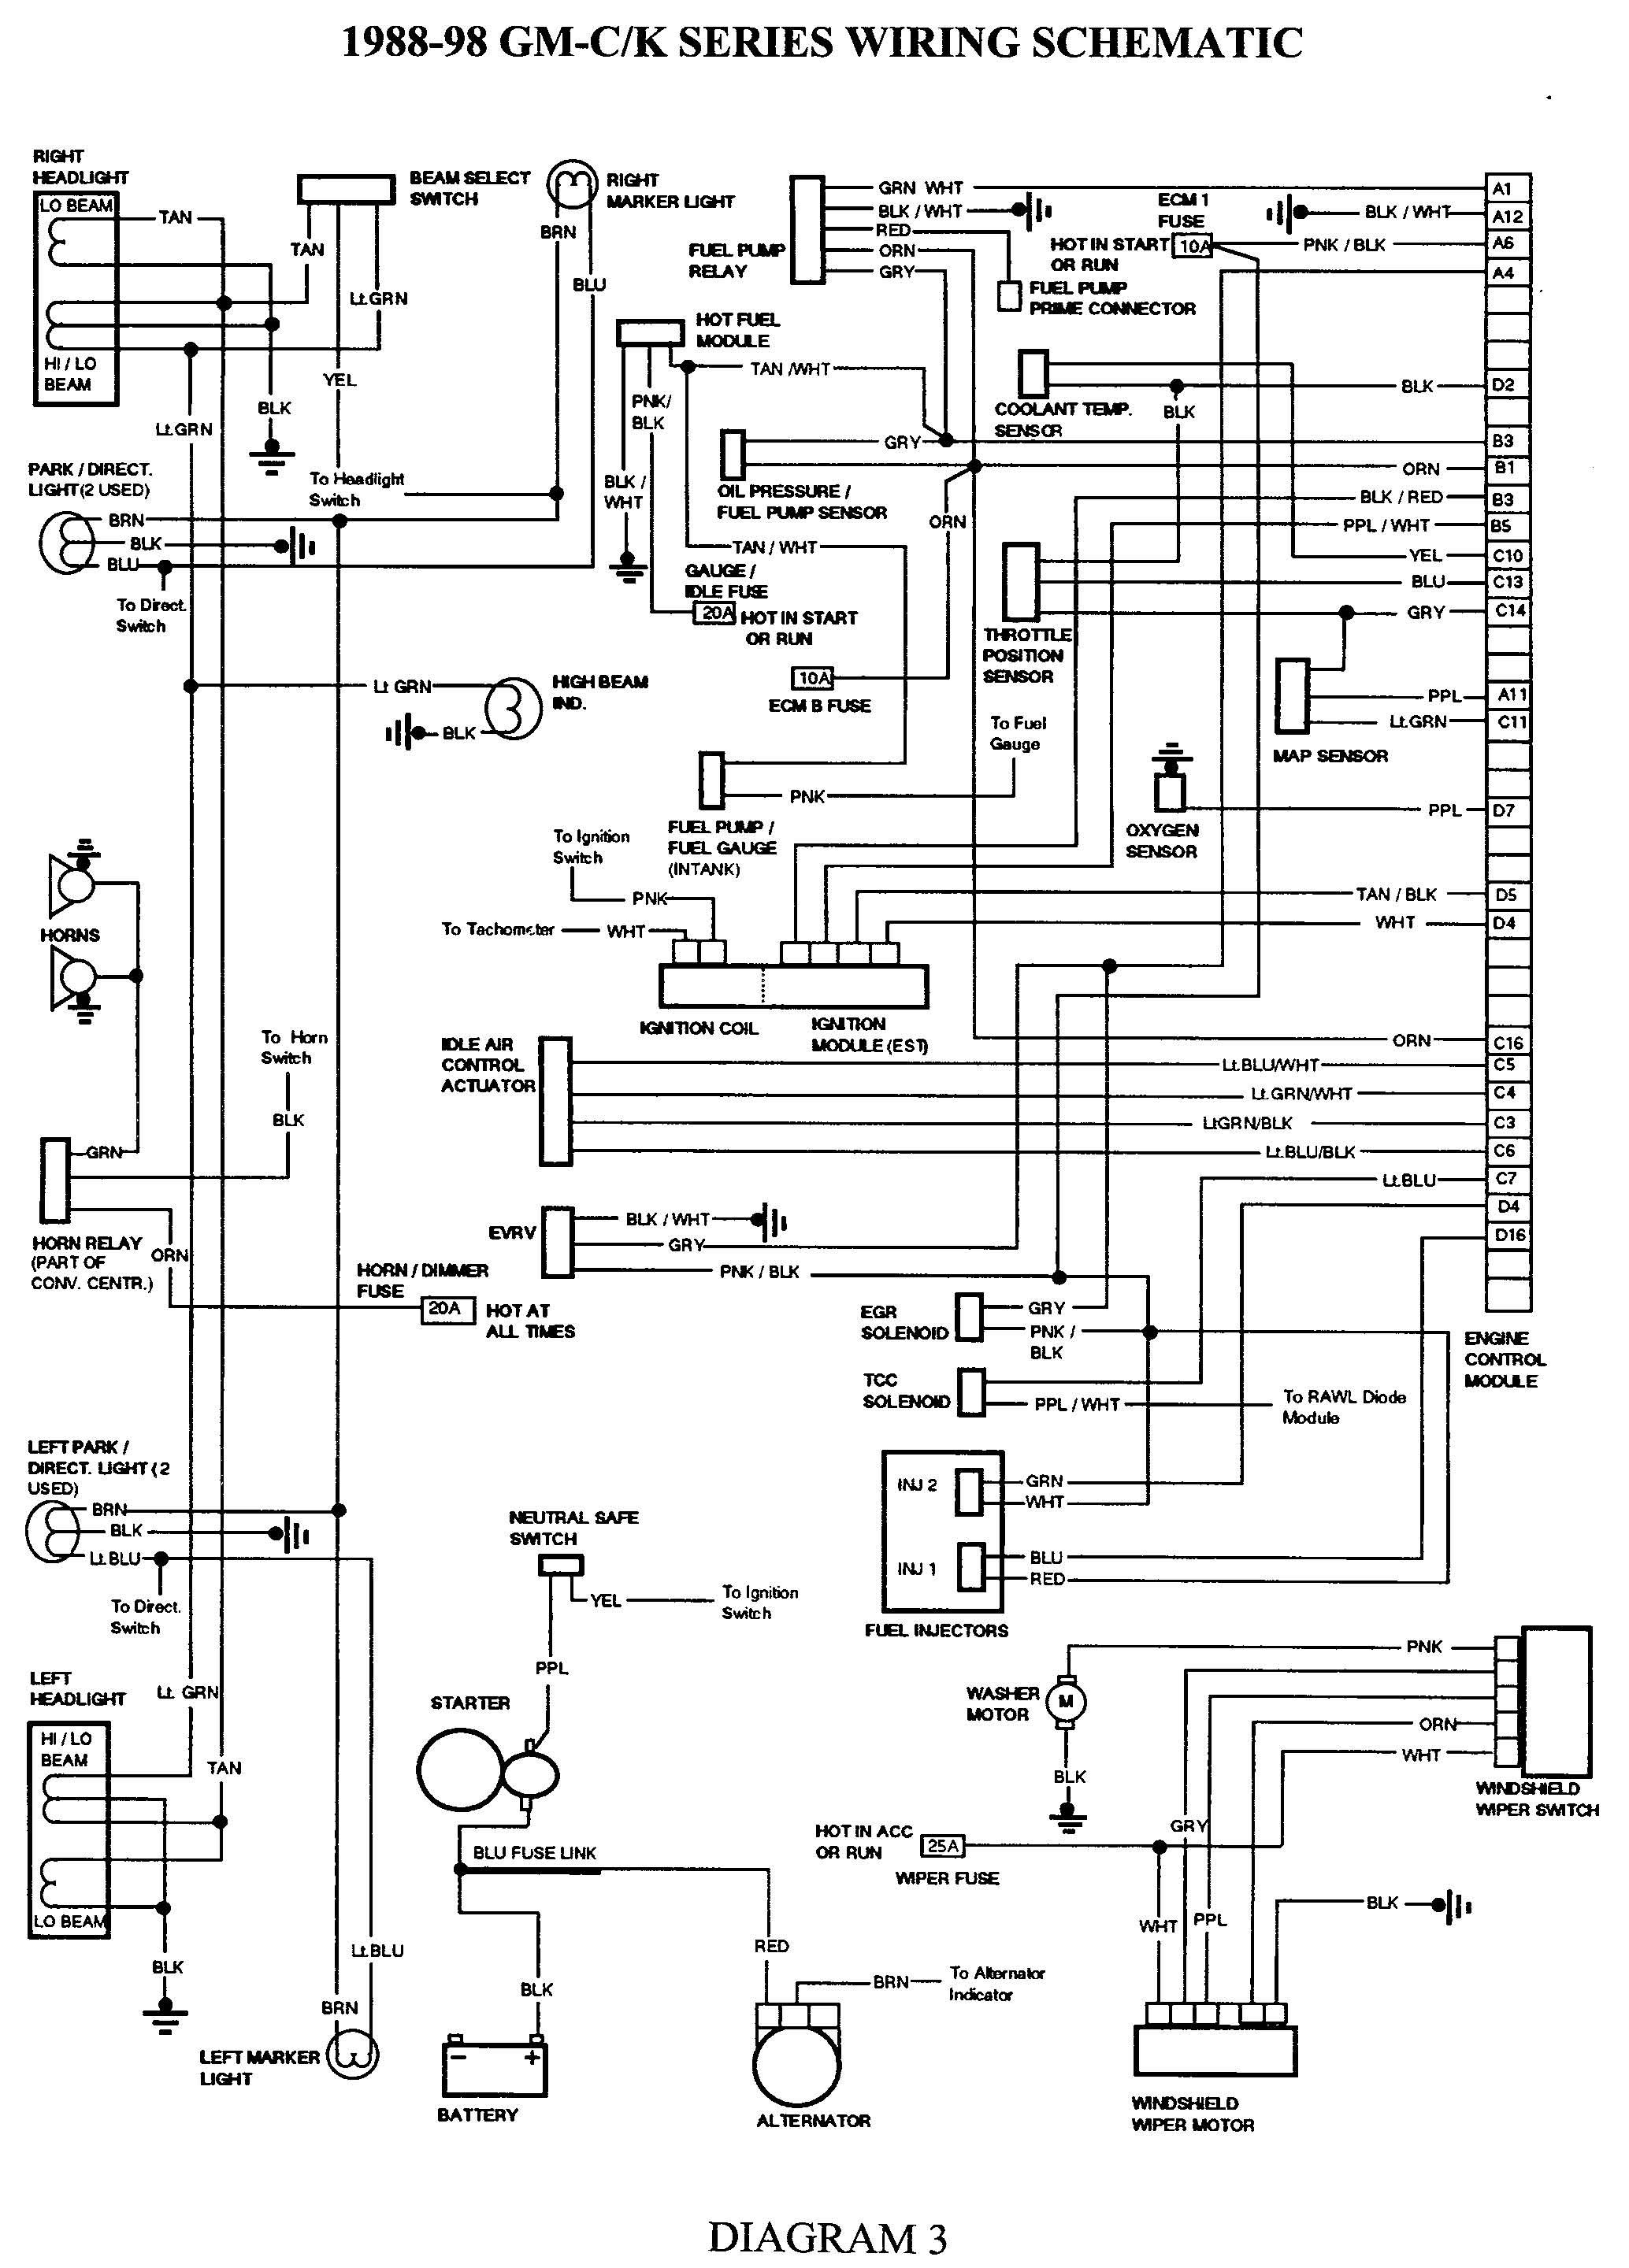 4x4 wiring diagram wiring diagram home 1995 polaris 300 4x4 wiring diagram 4x4 wiring diagram [ 2068 x 2880 Pixel ]